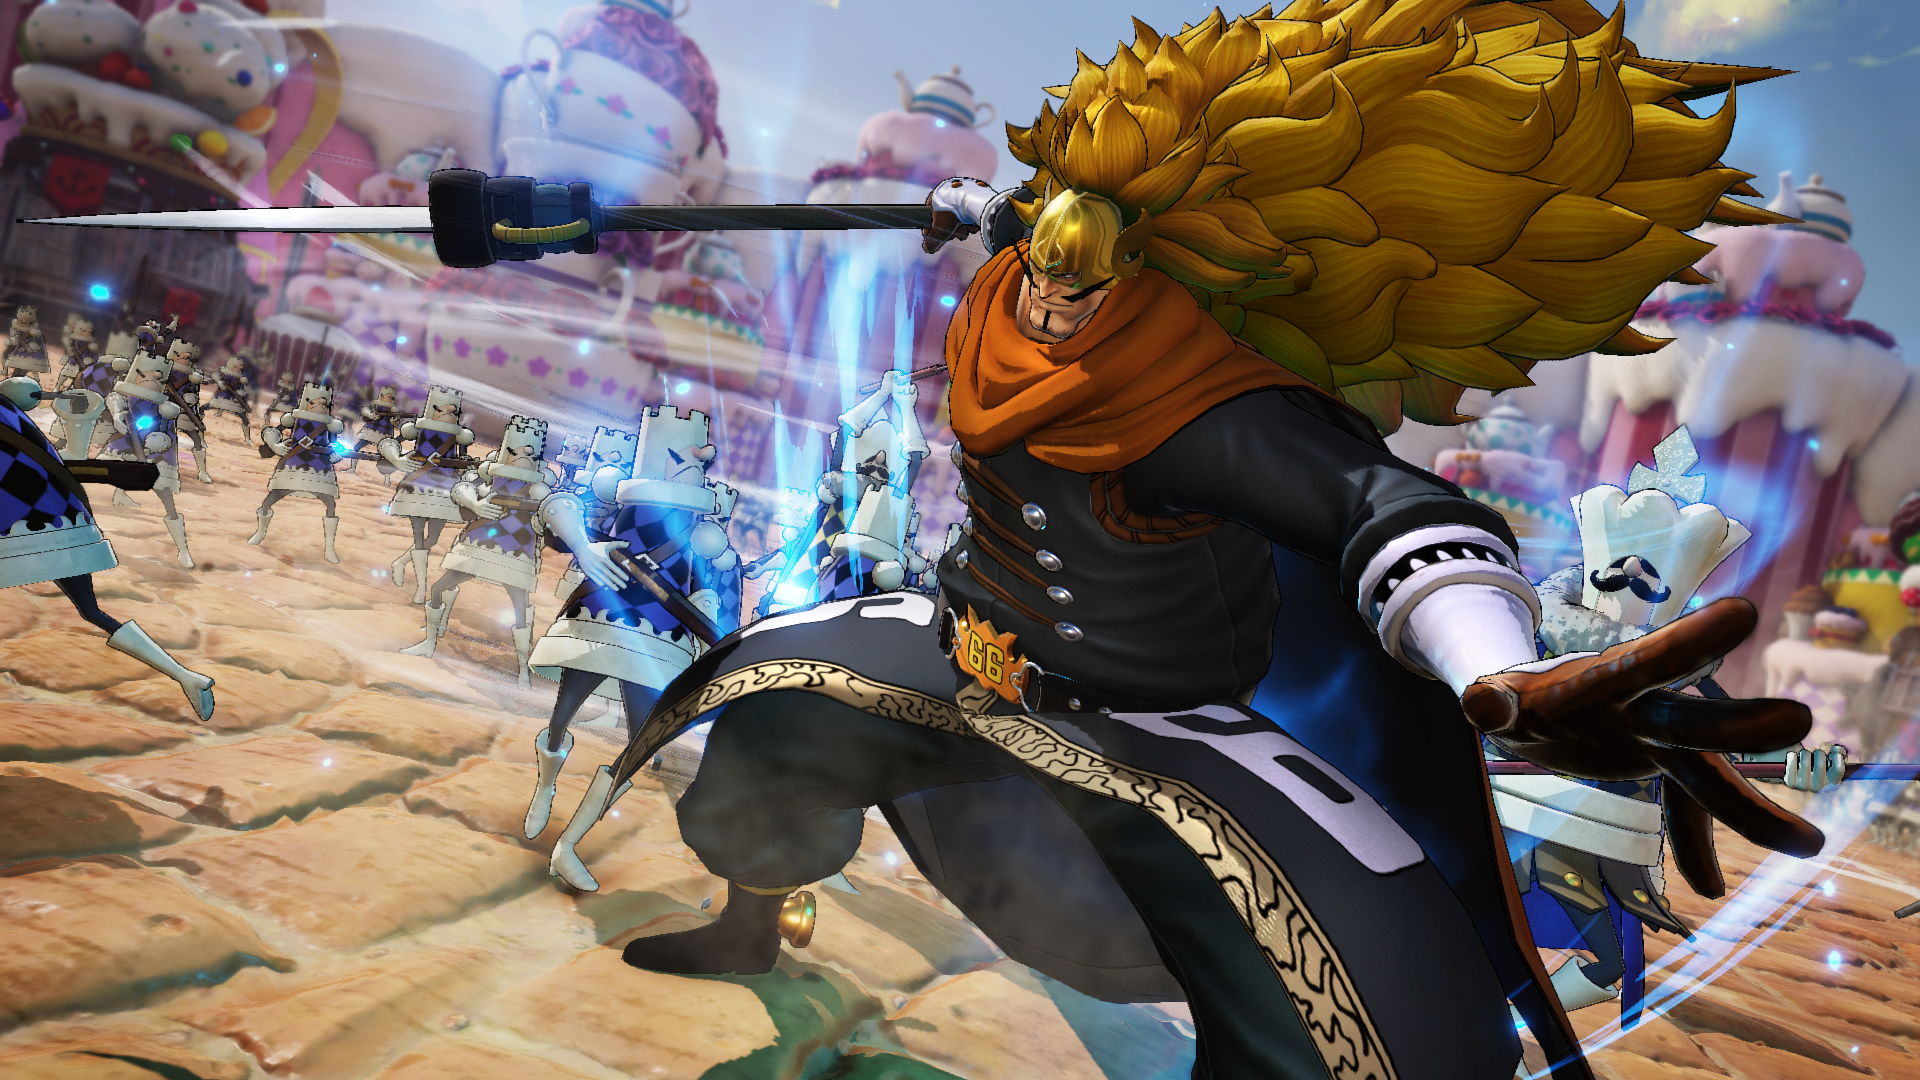 Vinsmoke Judge to complete the first Character Pack of ONE PIECE PIRATE WARRIORS 4!